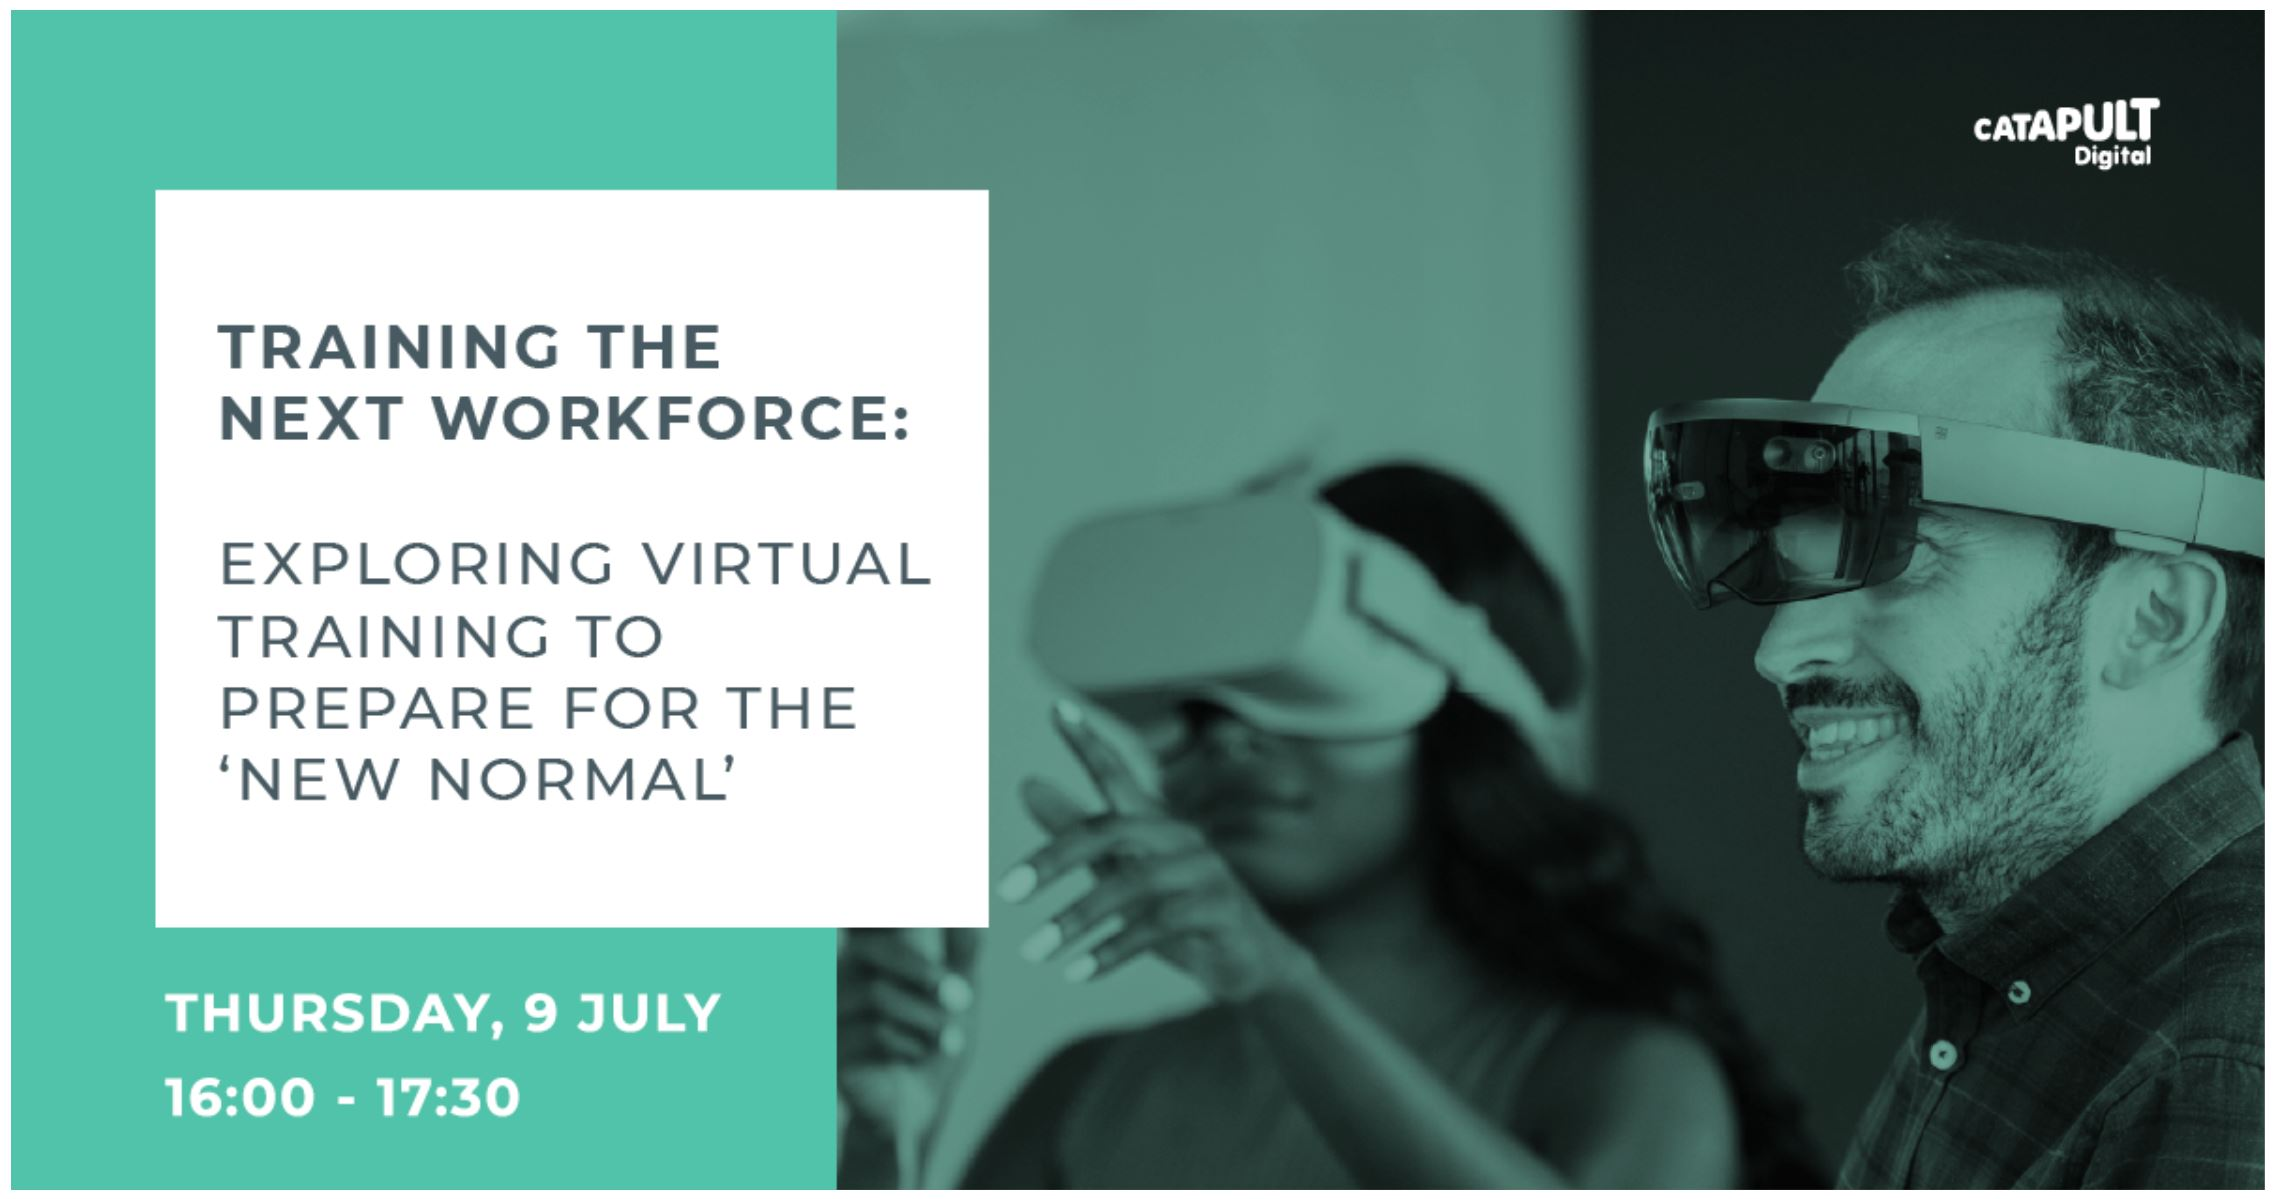 Training the next workforce: exploring virtual training to prepare for the 'new normal'